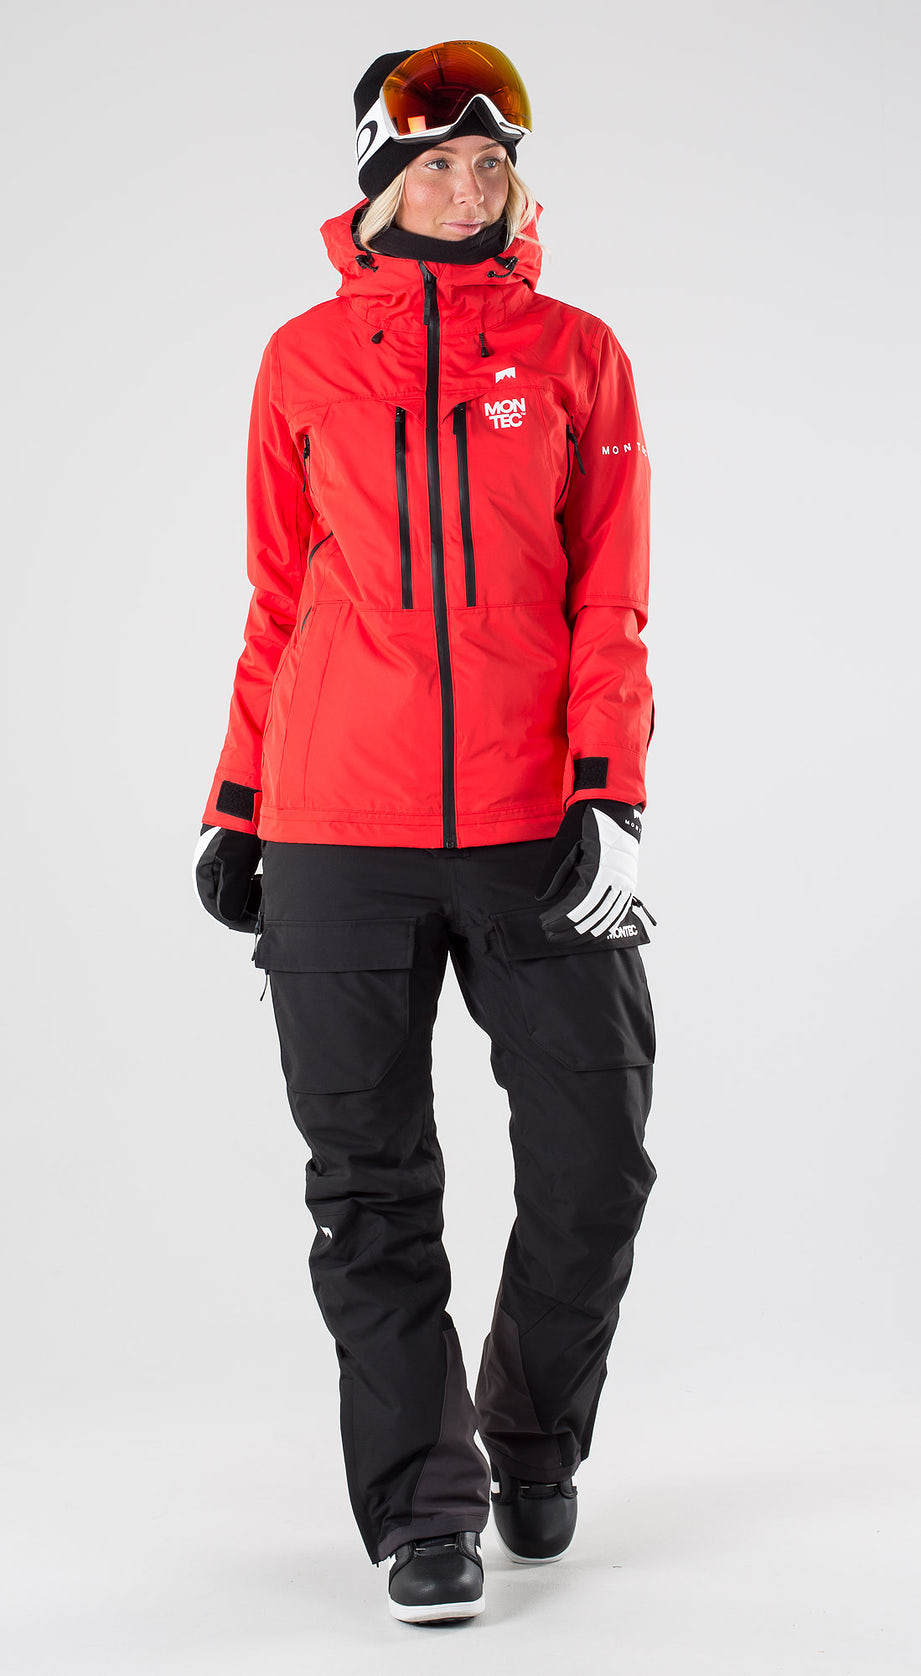 Montec Moss Red Snowboard clothing Multi